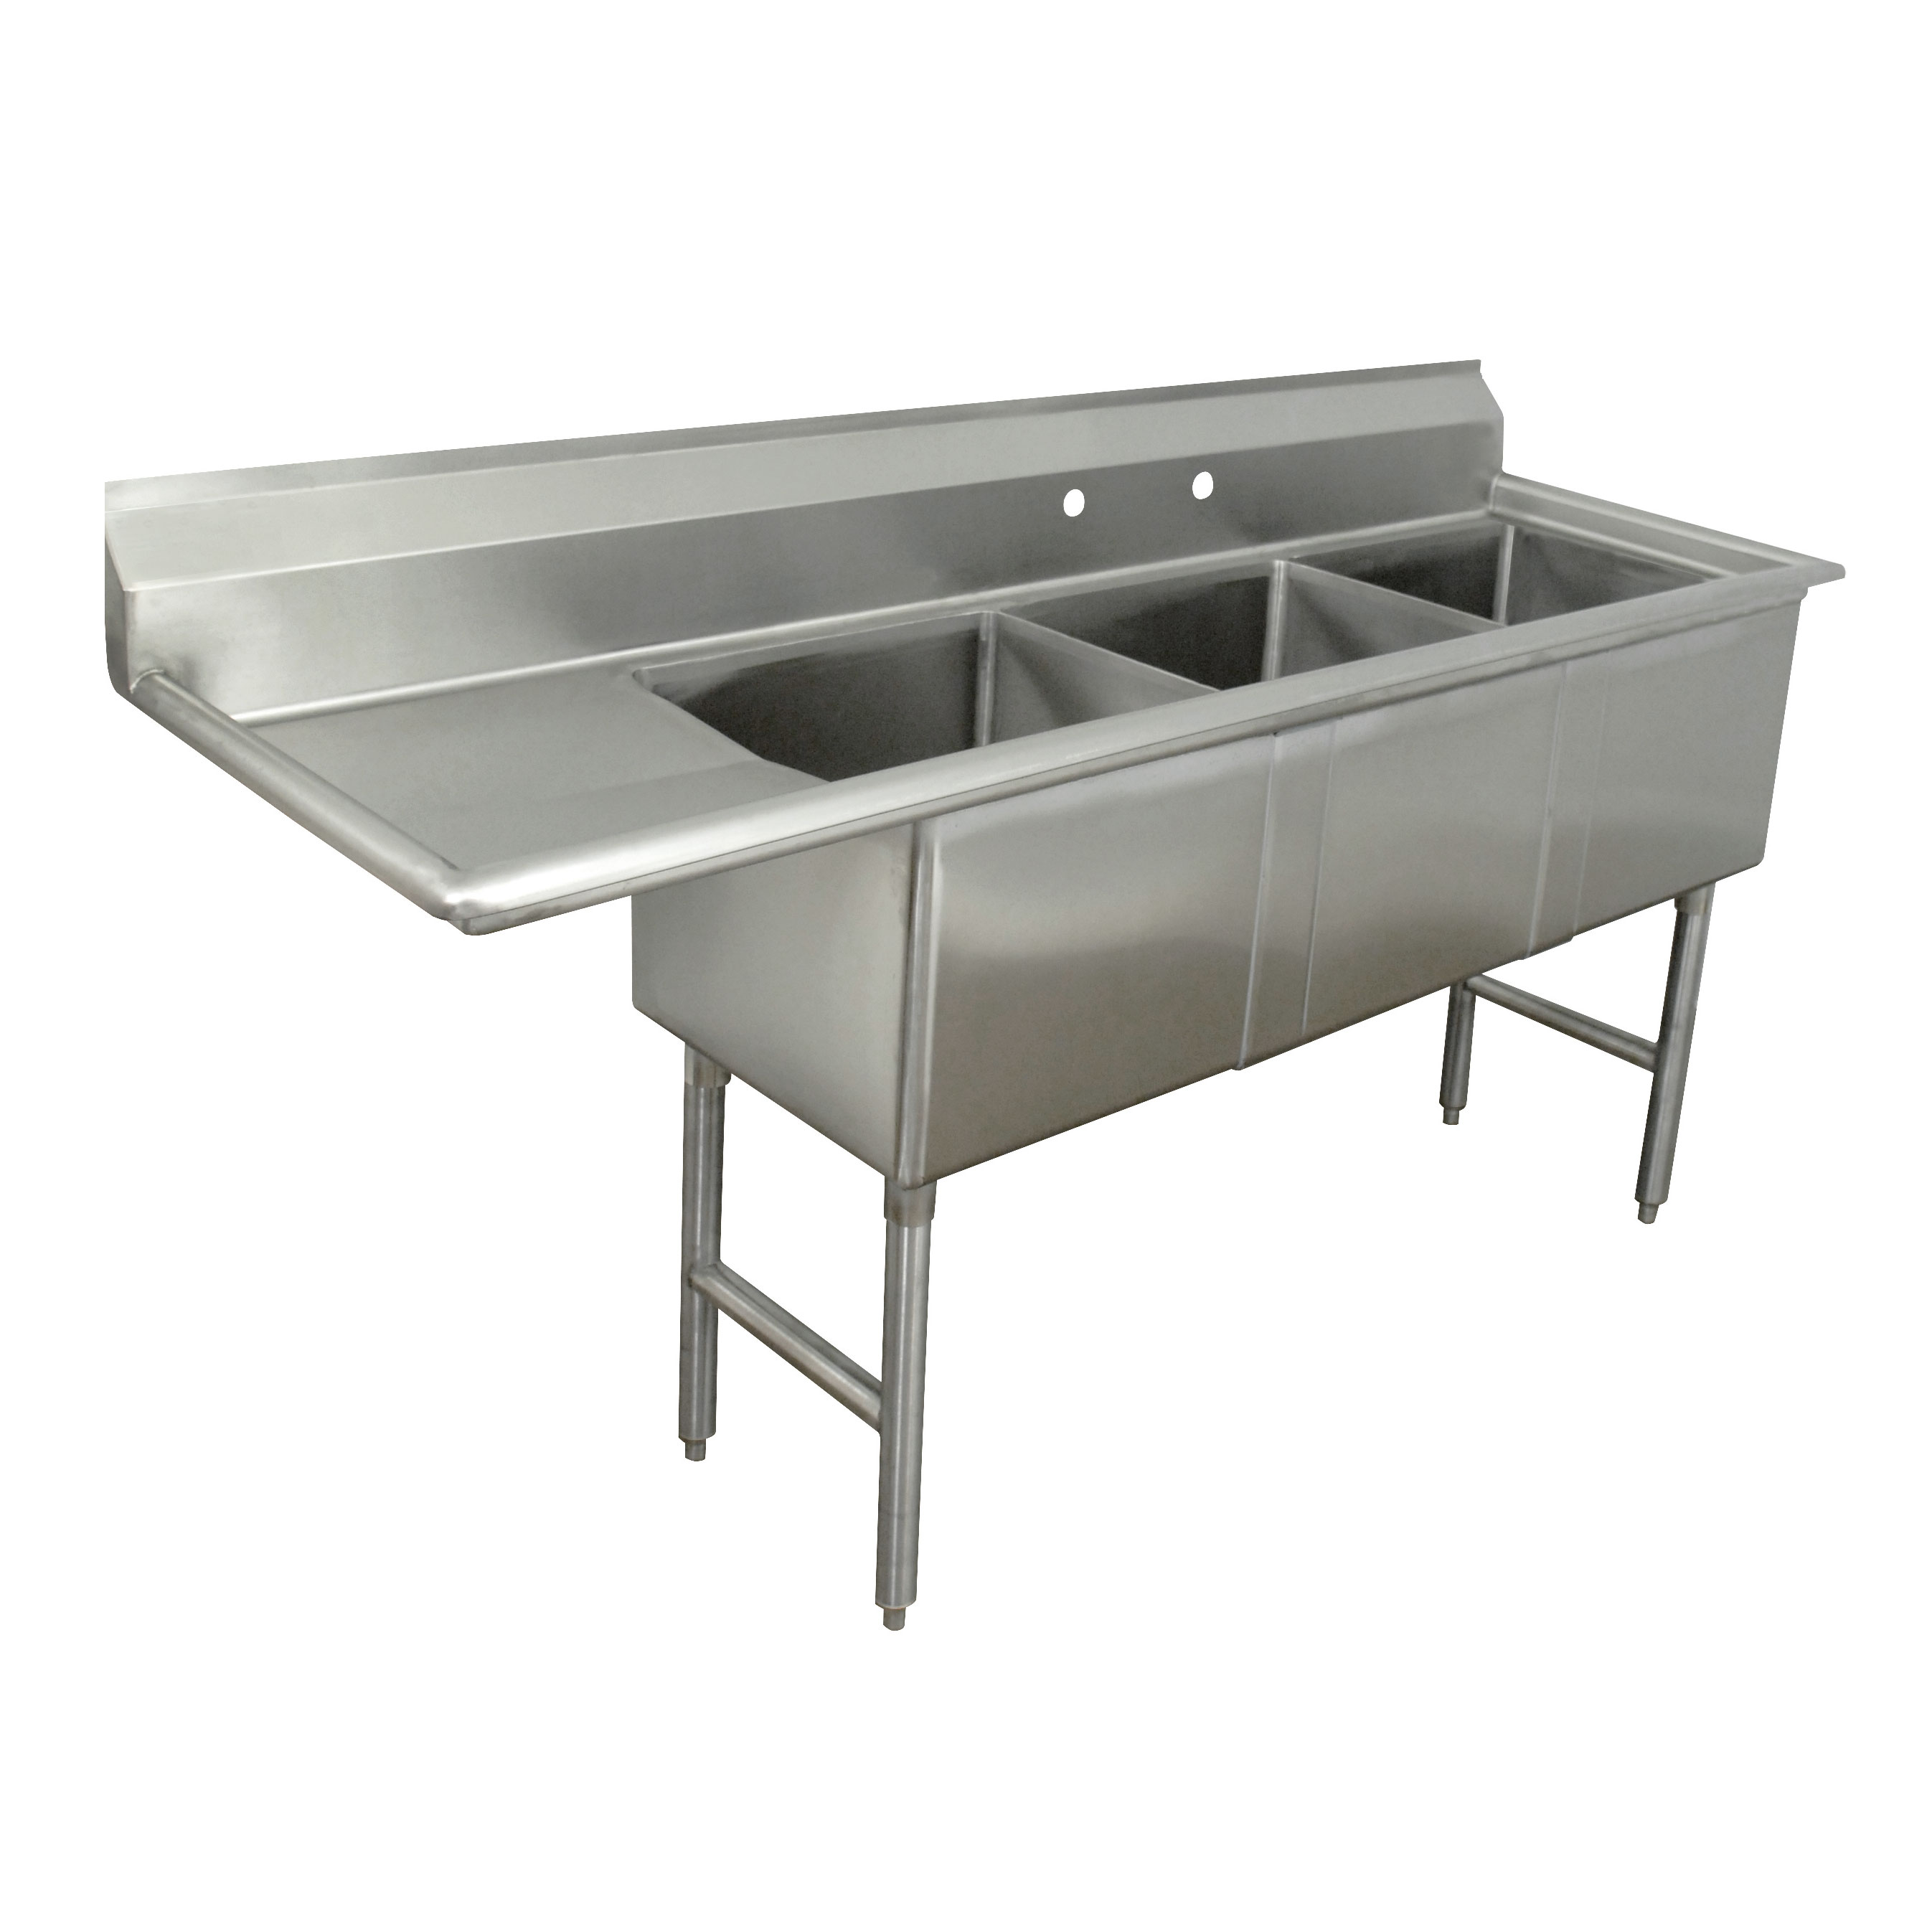 Advance Tabco FC-3-1620-18L sink, (3) three compartment